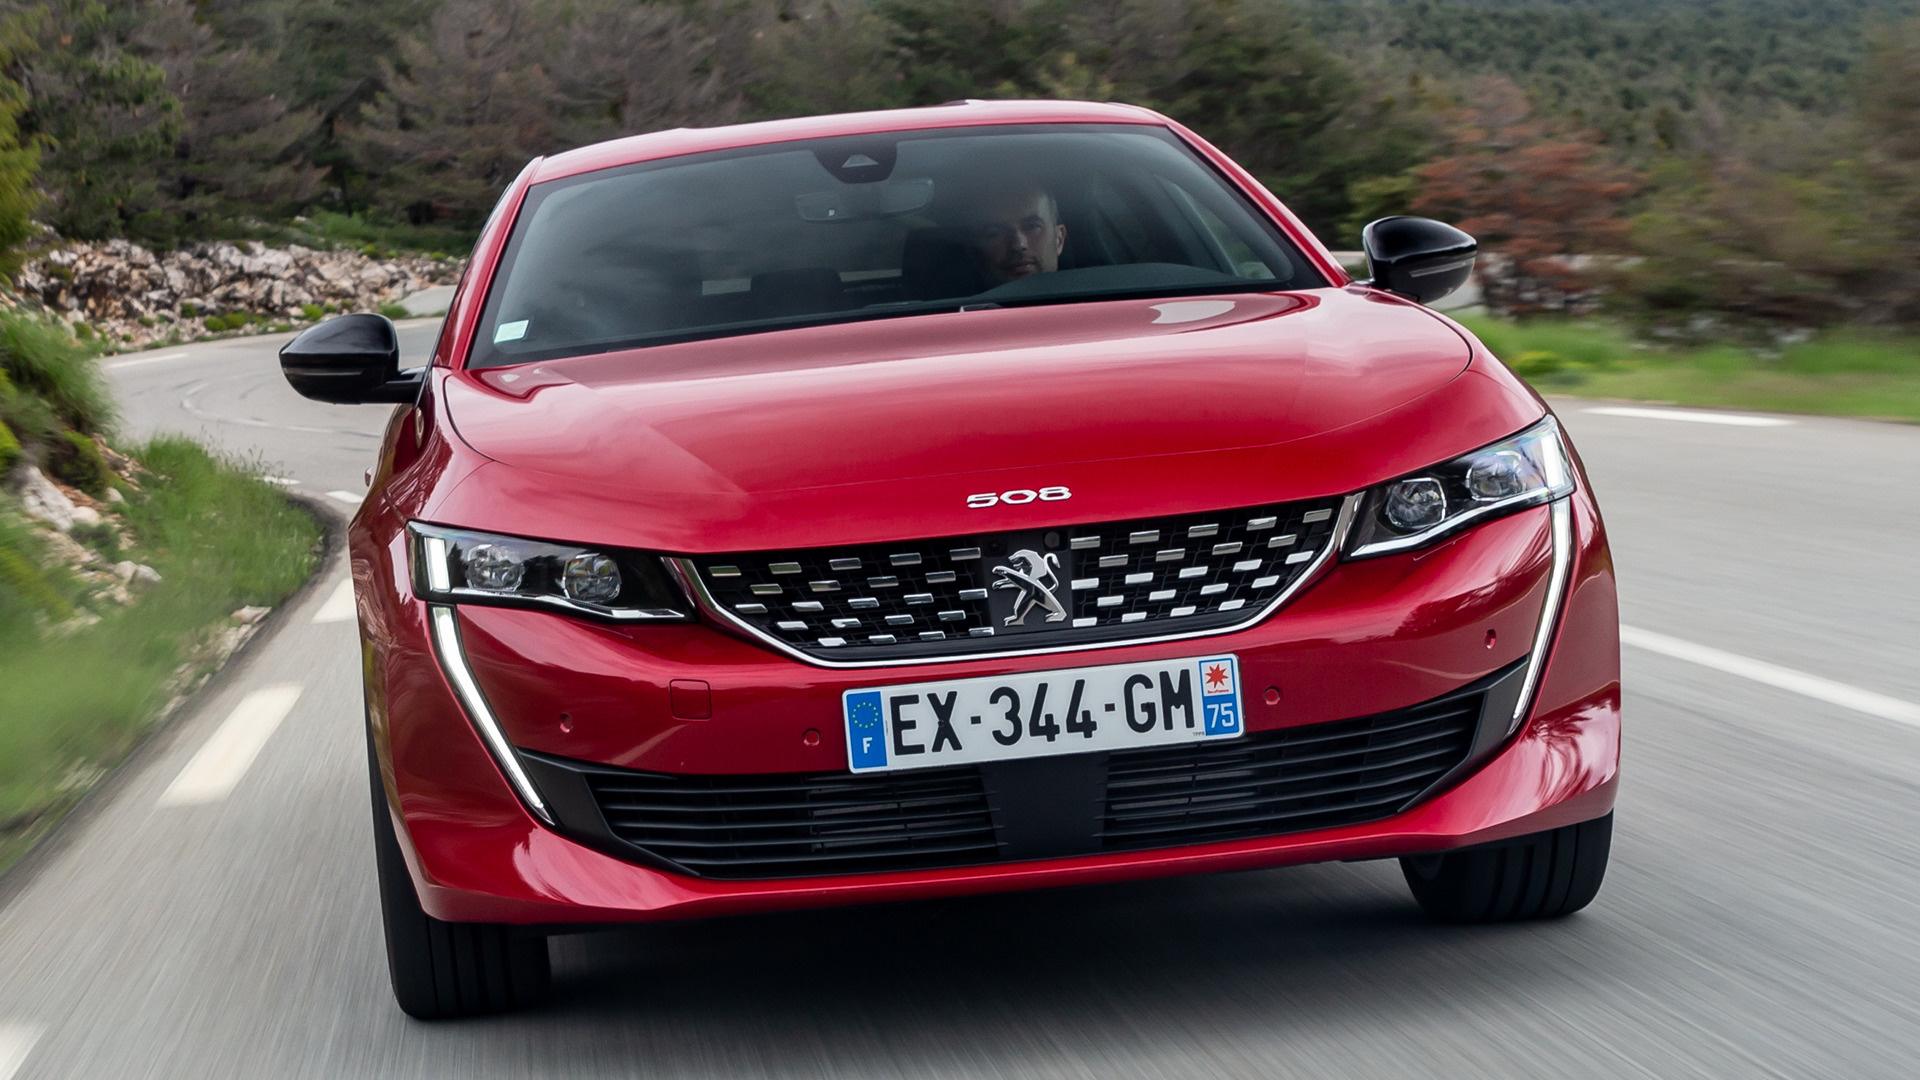 2018 Peugeot 508 GT   Wallpapers and HD Images Car Pixel 1920x1080